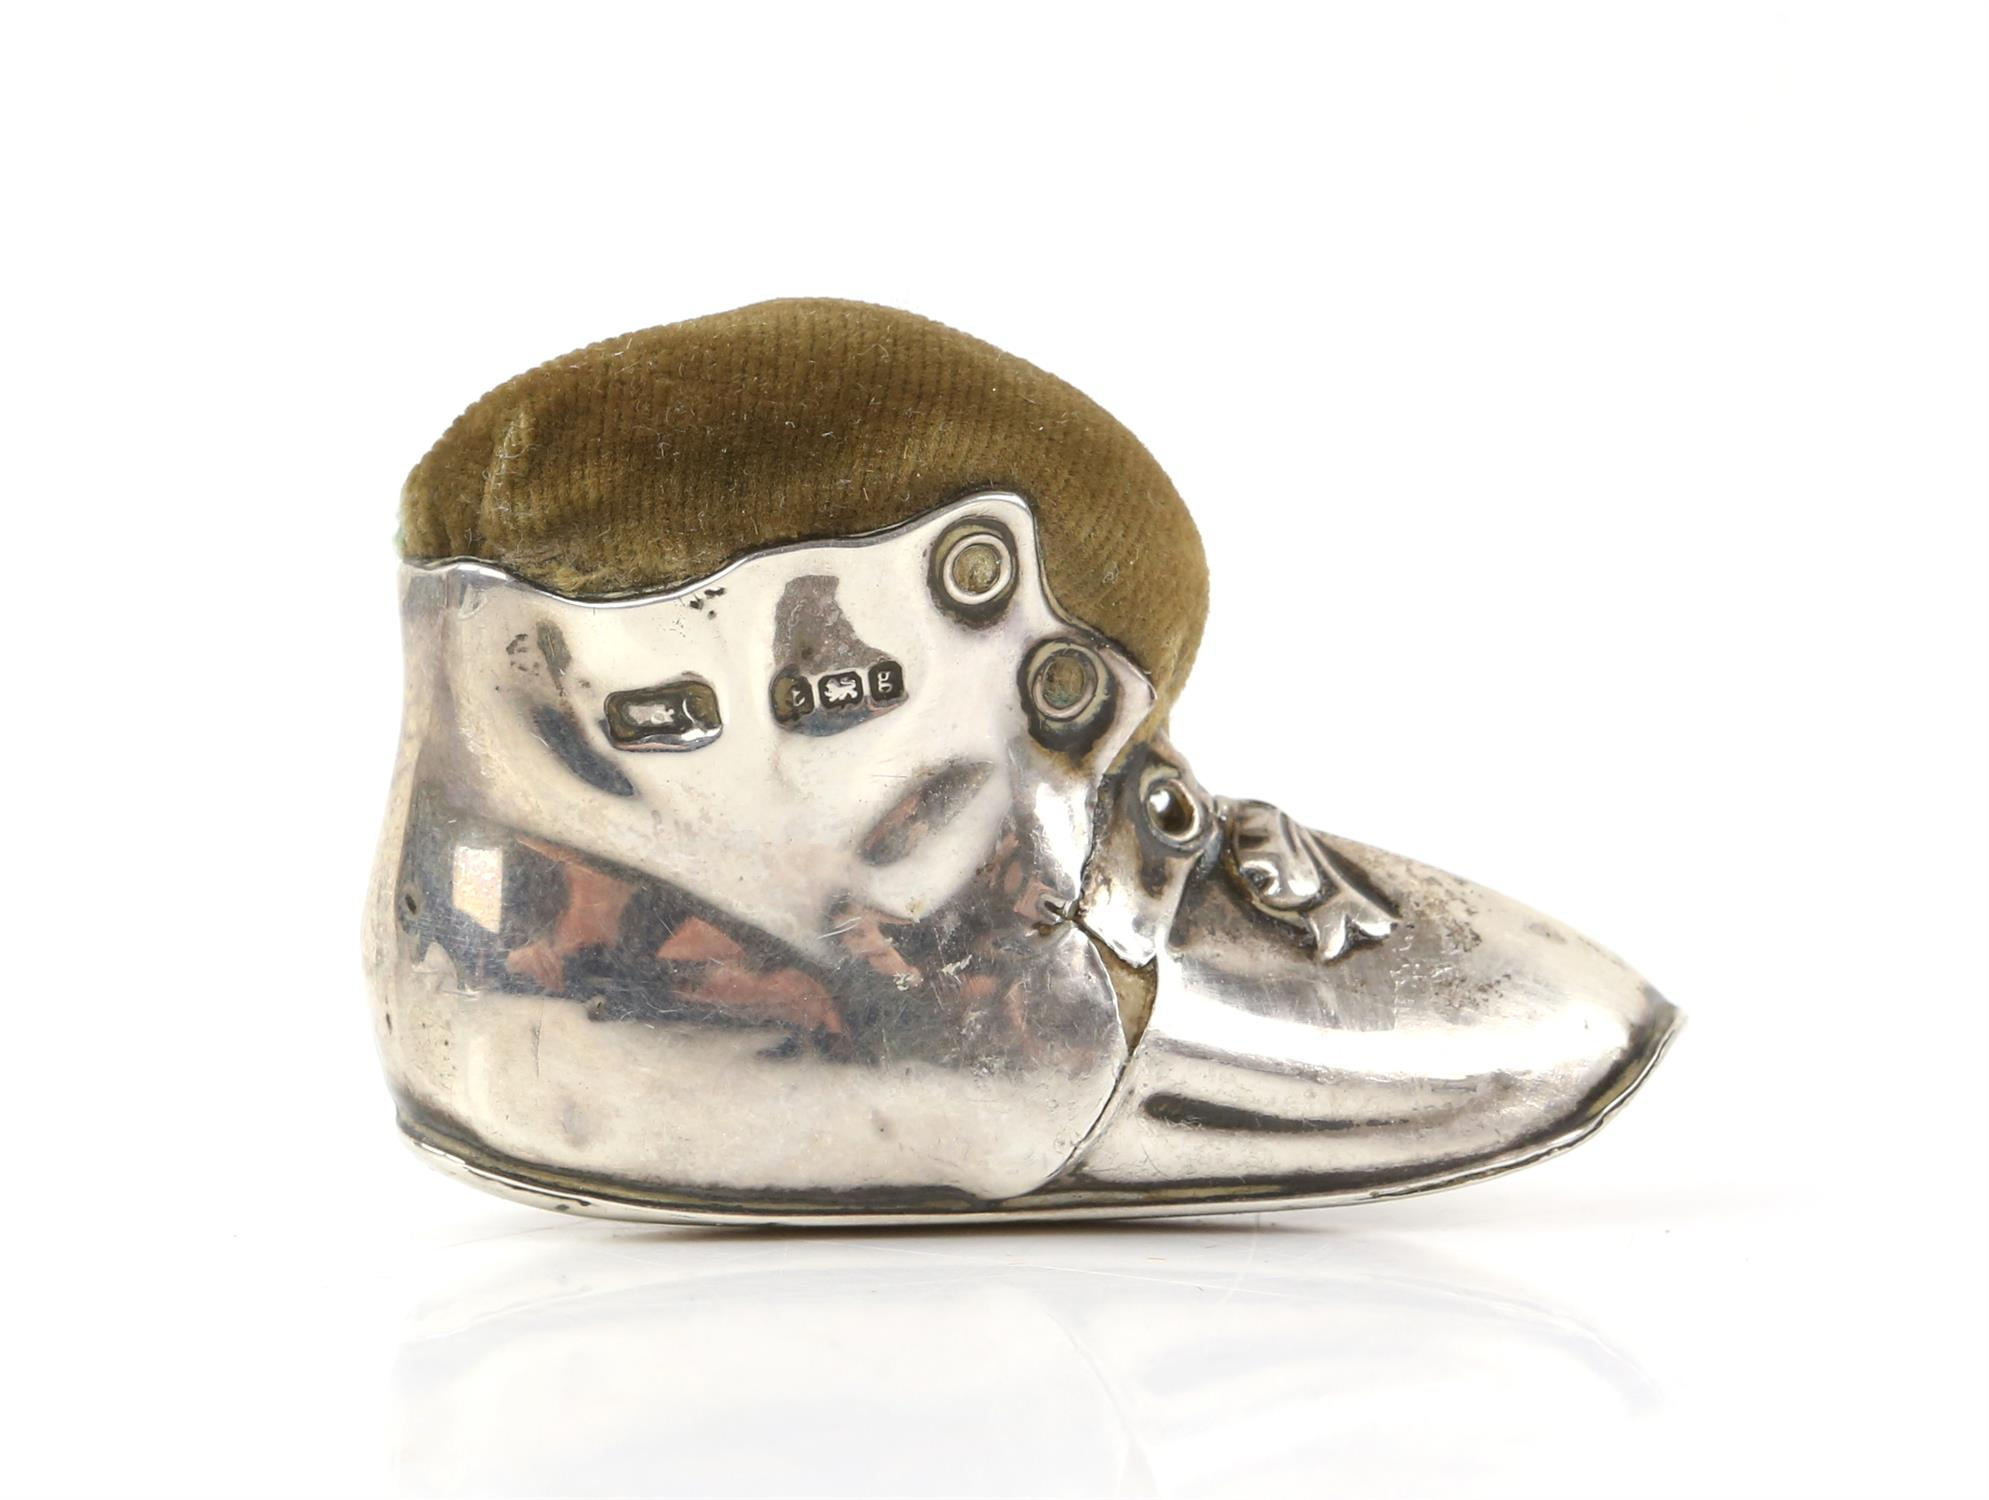 Edward VII silver novelty pin cushion in the form of a tramp's boot, Birmingham 1906 - Image 4 of 4